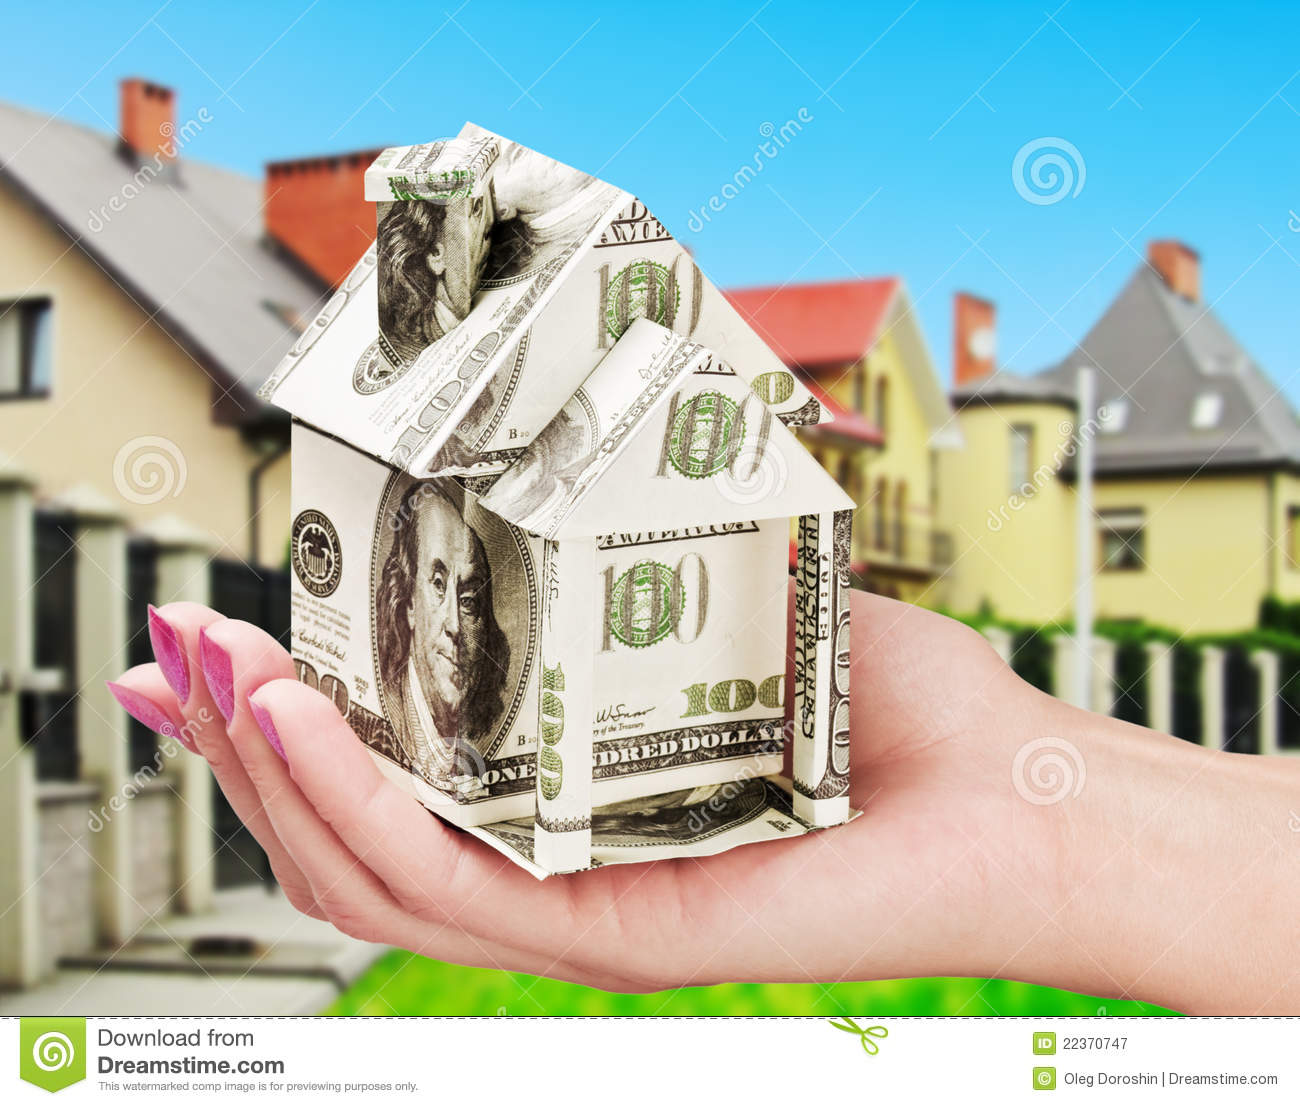 Savings money buying new house royalty free stock image for Save money building a house